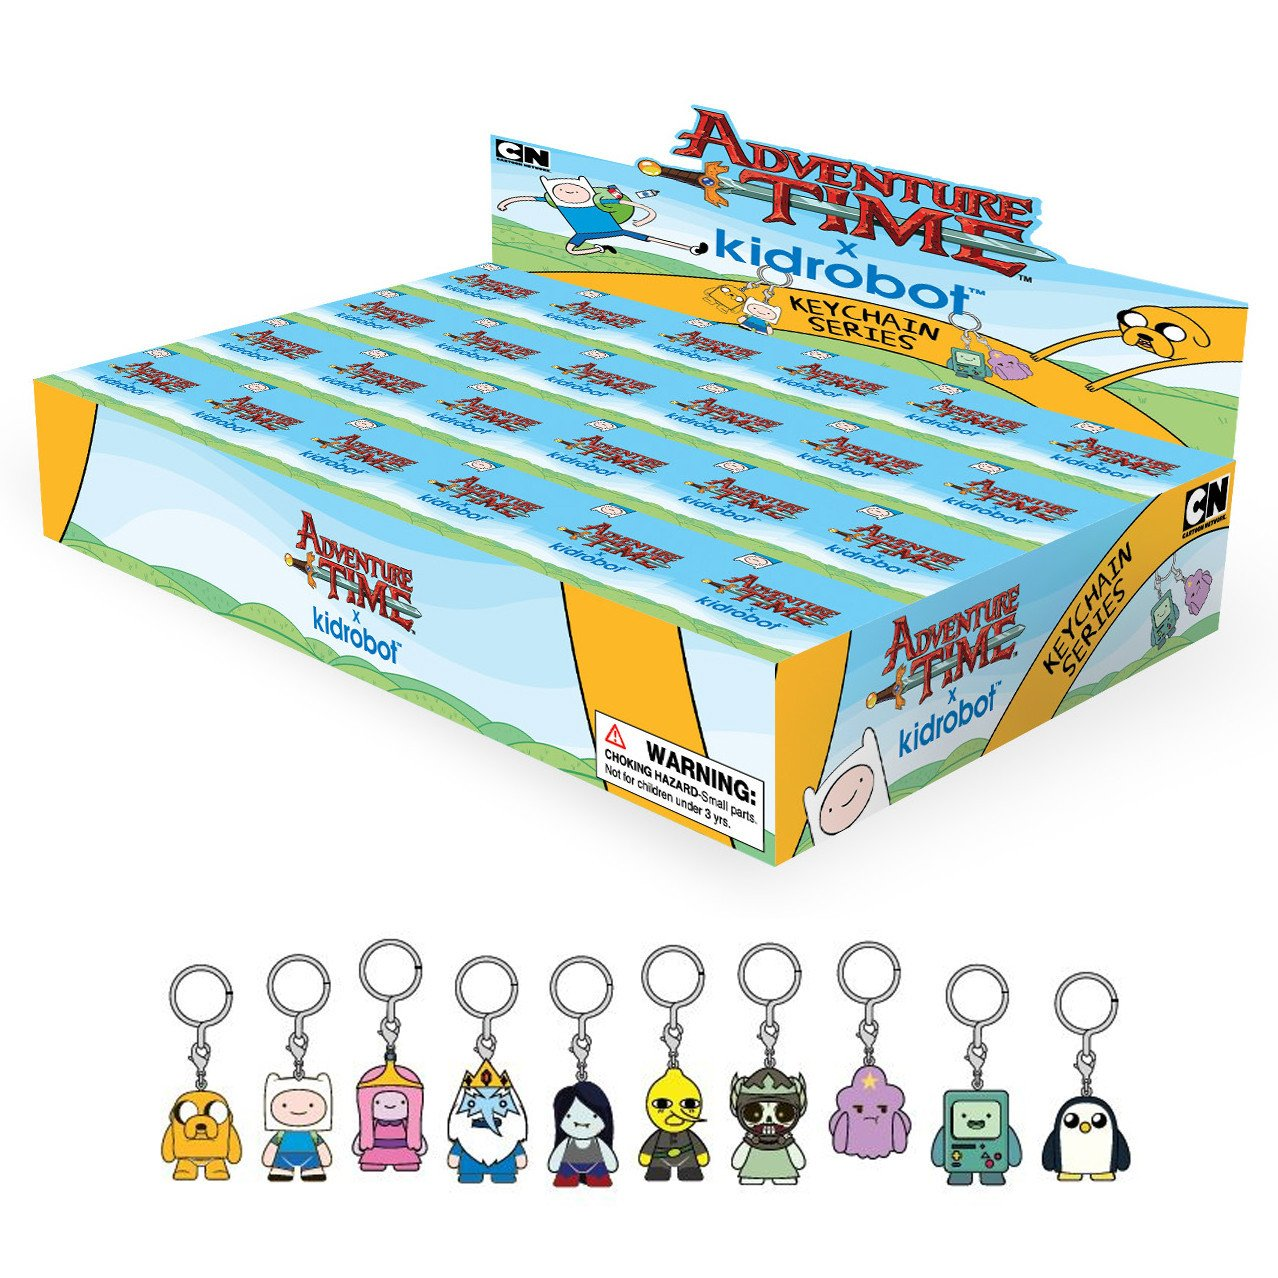 Adventure Time x Kidrobot Keychain Series: (Case of 24) - Fugitive Toys